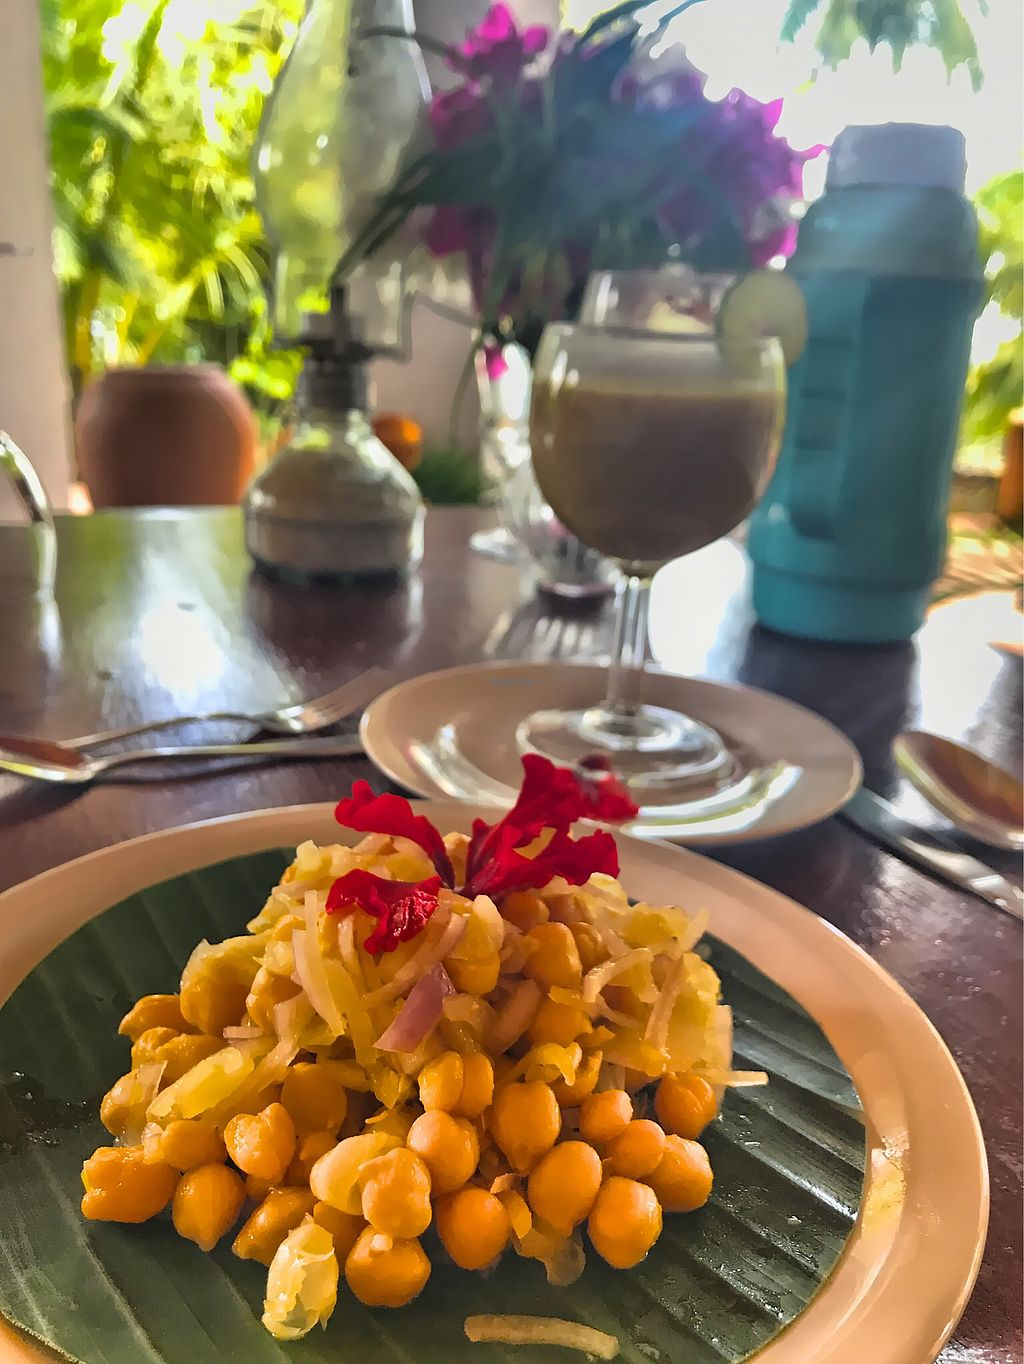 """Photo of Hotel Eva Lanka  by <a href=""""/members/profile/SoniaGivray"""">SoniaGivray</a> <br/>Chickpeas salad  <br/> November 4, 2017  - <a href='/contact/abuse/image/103823/321646'>Report</a>"""